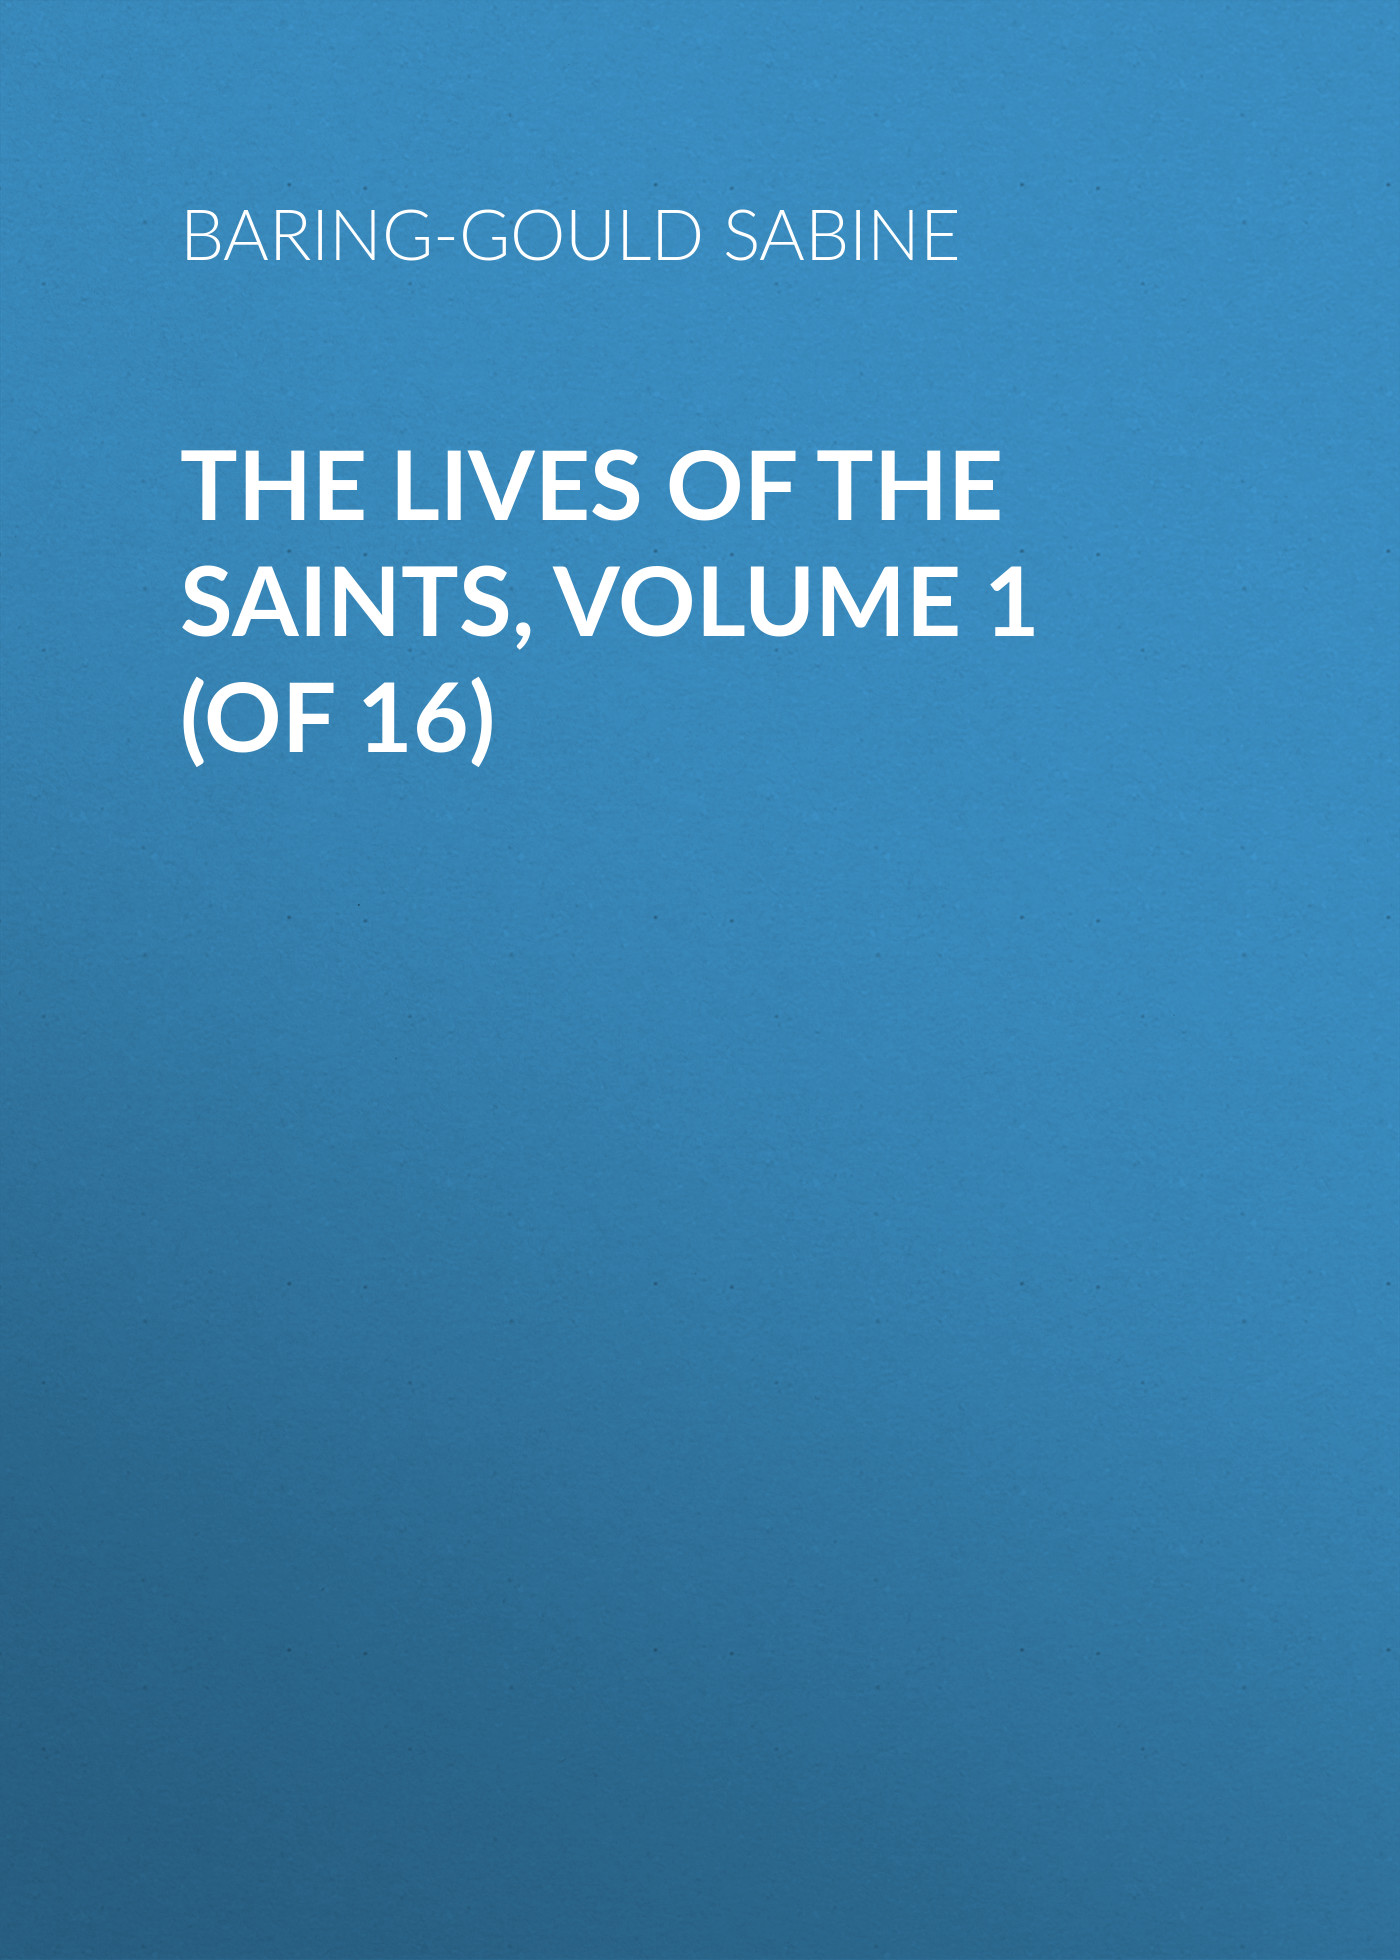 Baring-Gould Sabine The Lives of the Saints, Volume 1 (of 16)